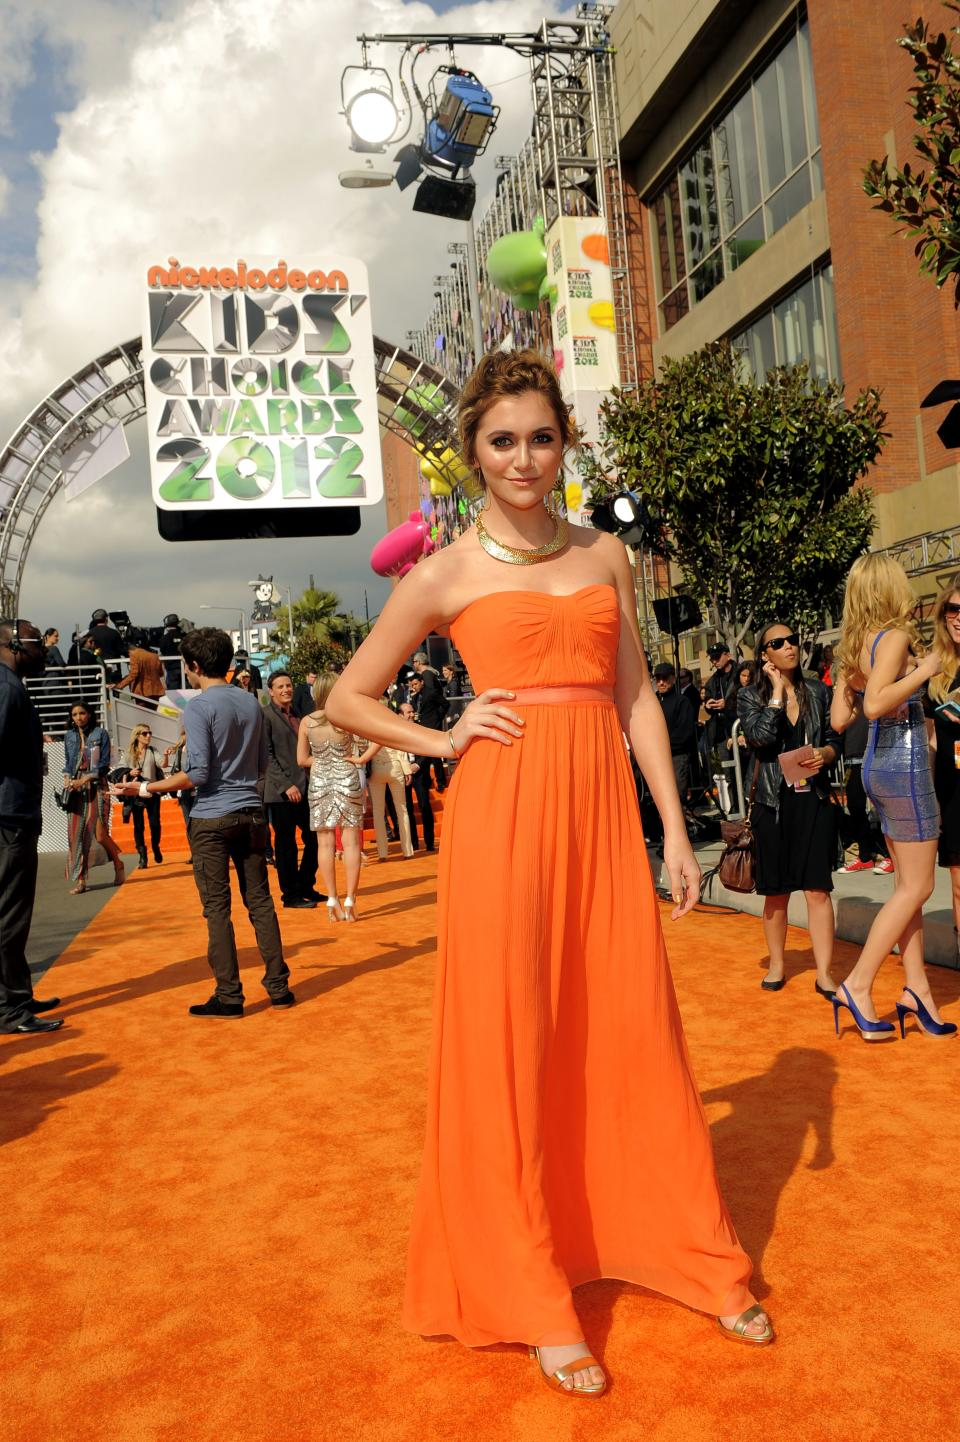 Alyson Stoner arrives at Nickelodeon's 25th Annual Kids' Choice Awards on Saturday, March 31, 2012 in Los Angeles. (AP Photo/Chris Pizzello)